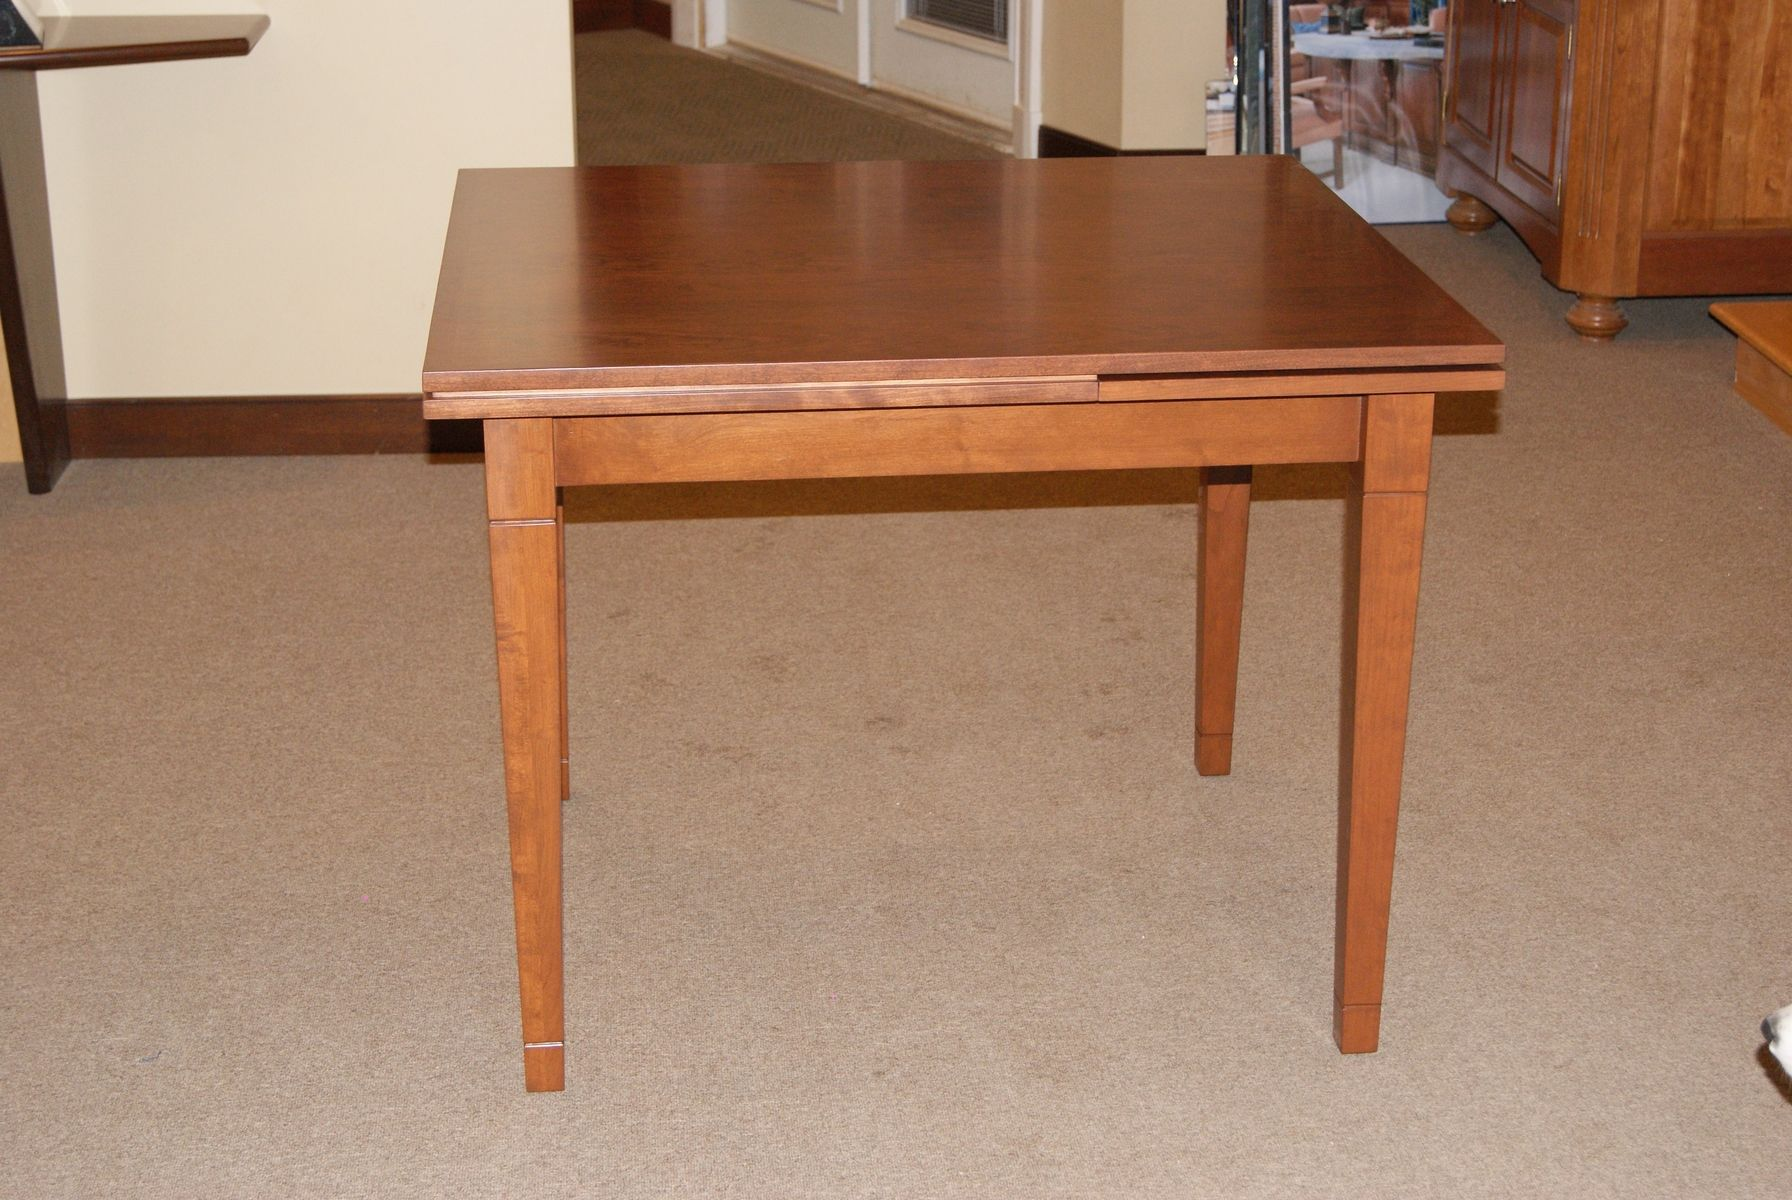 Table With Slide Out Leaves Handmade Dutch Pull Out Table By M S Moeller Cabinetry